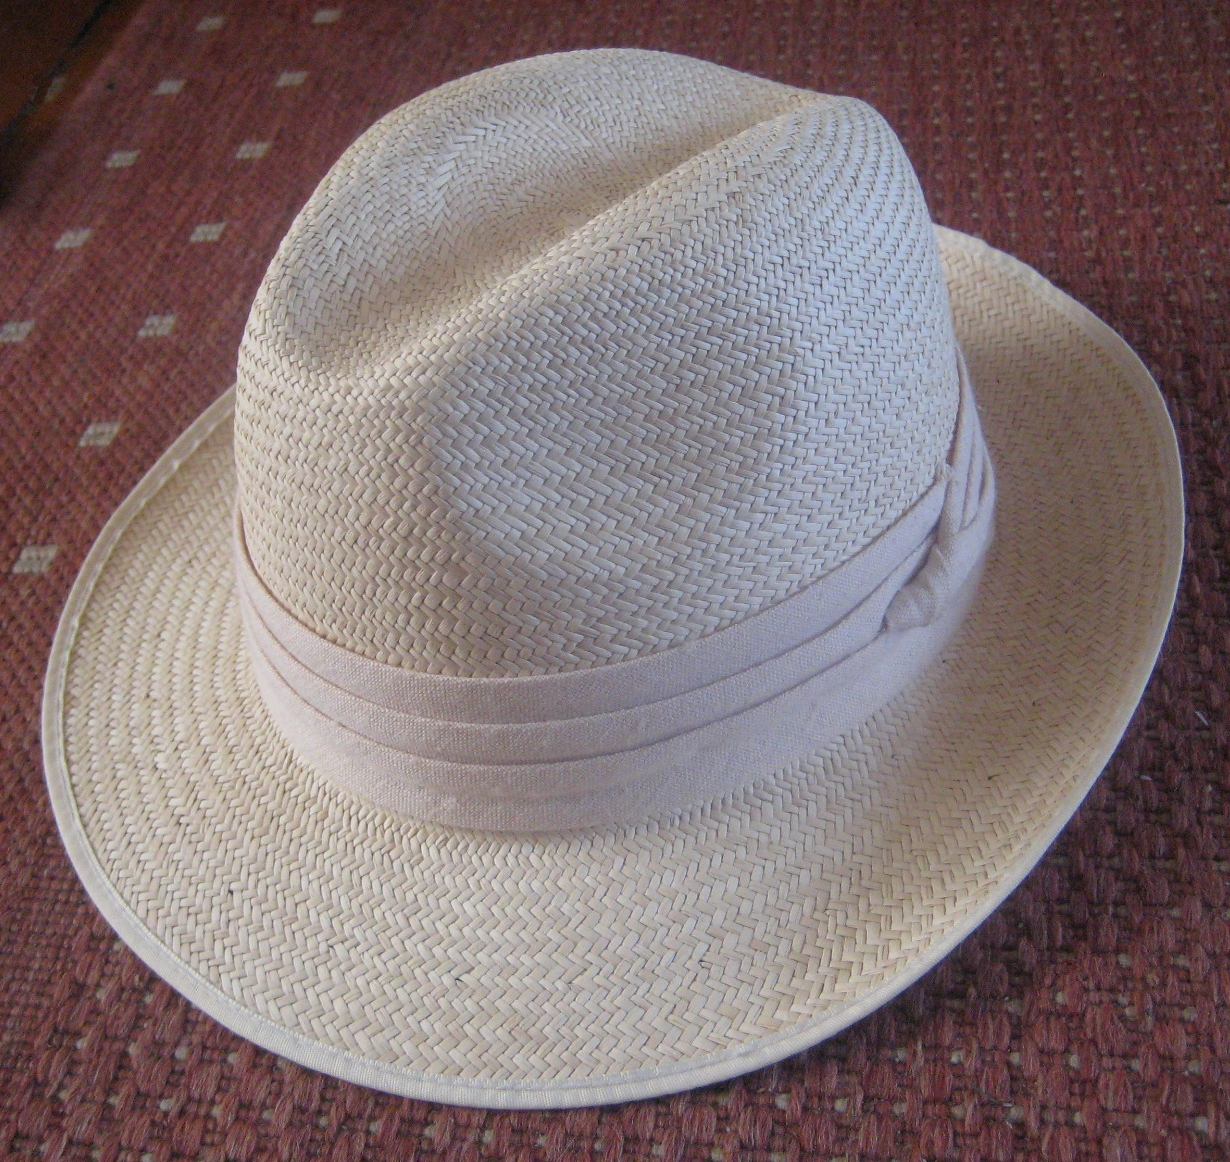 4b101aaadcd5cd Panama hat - Wikipedia